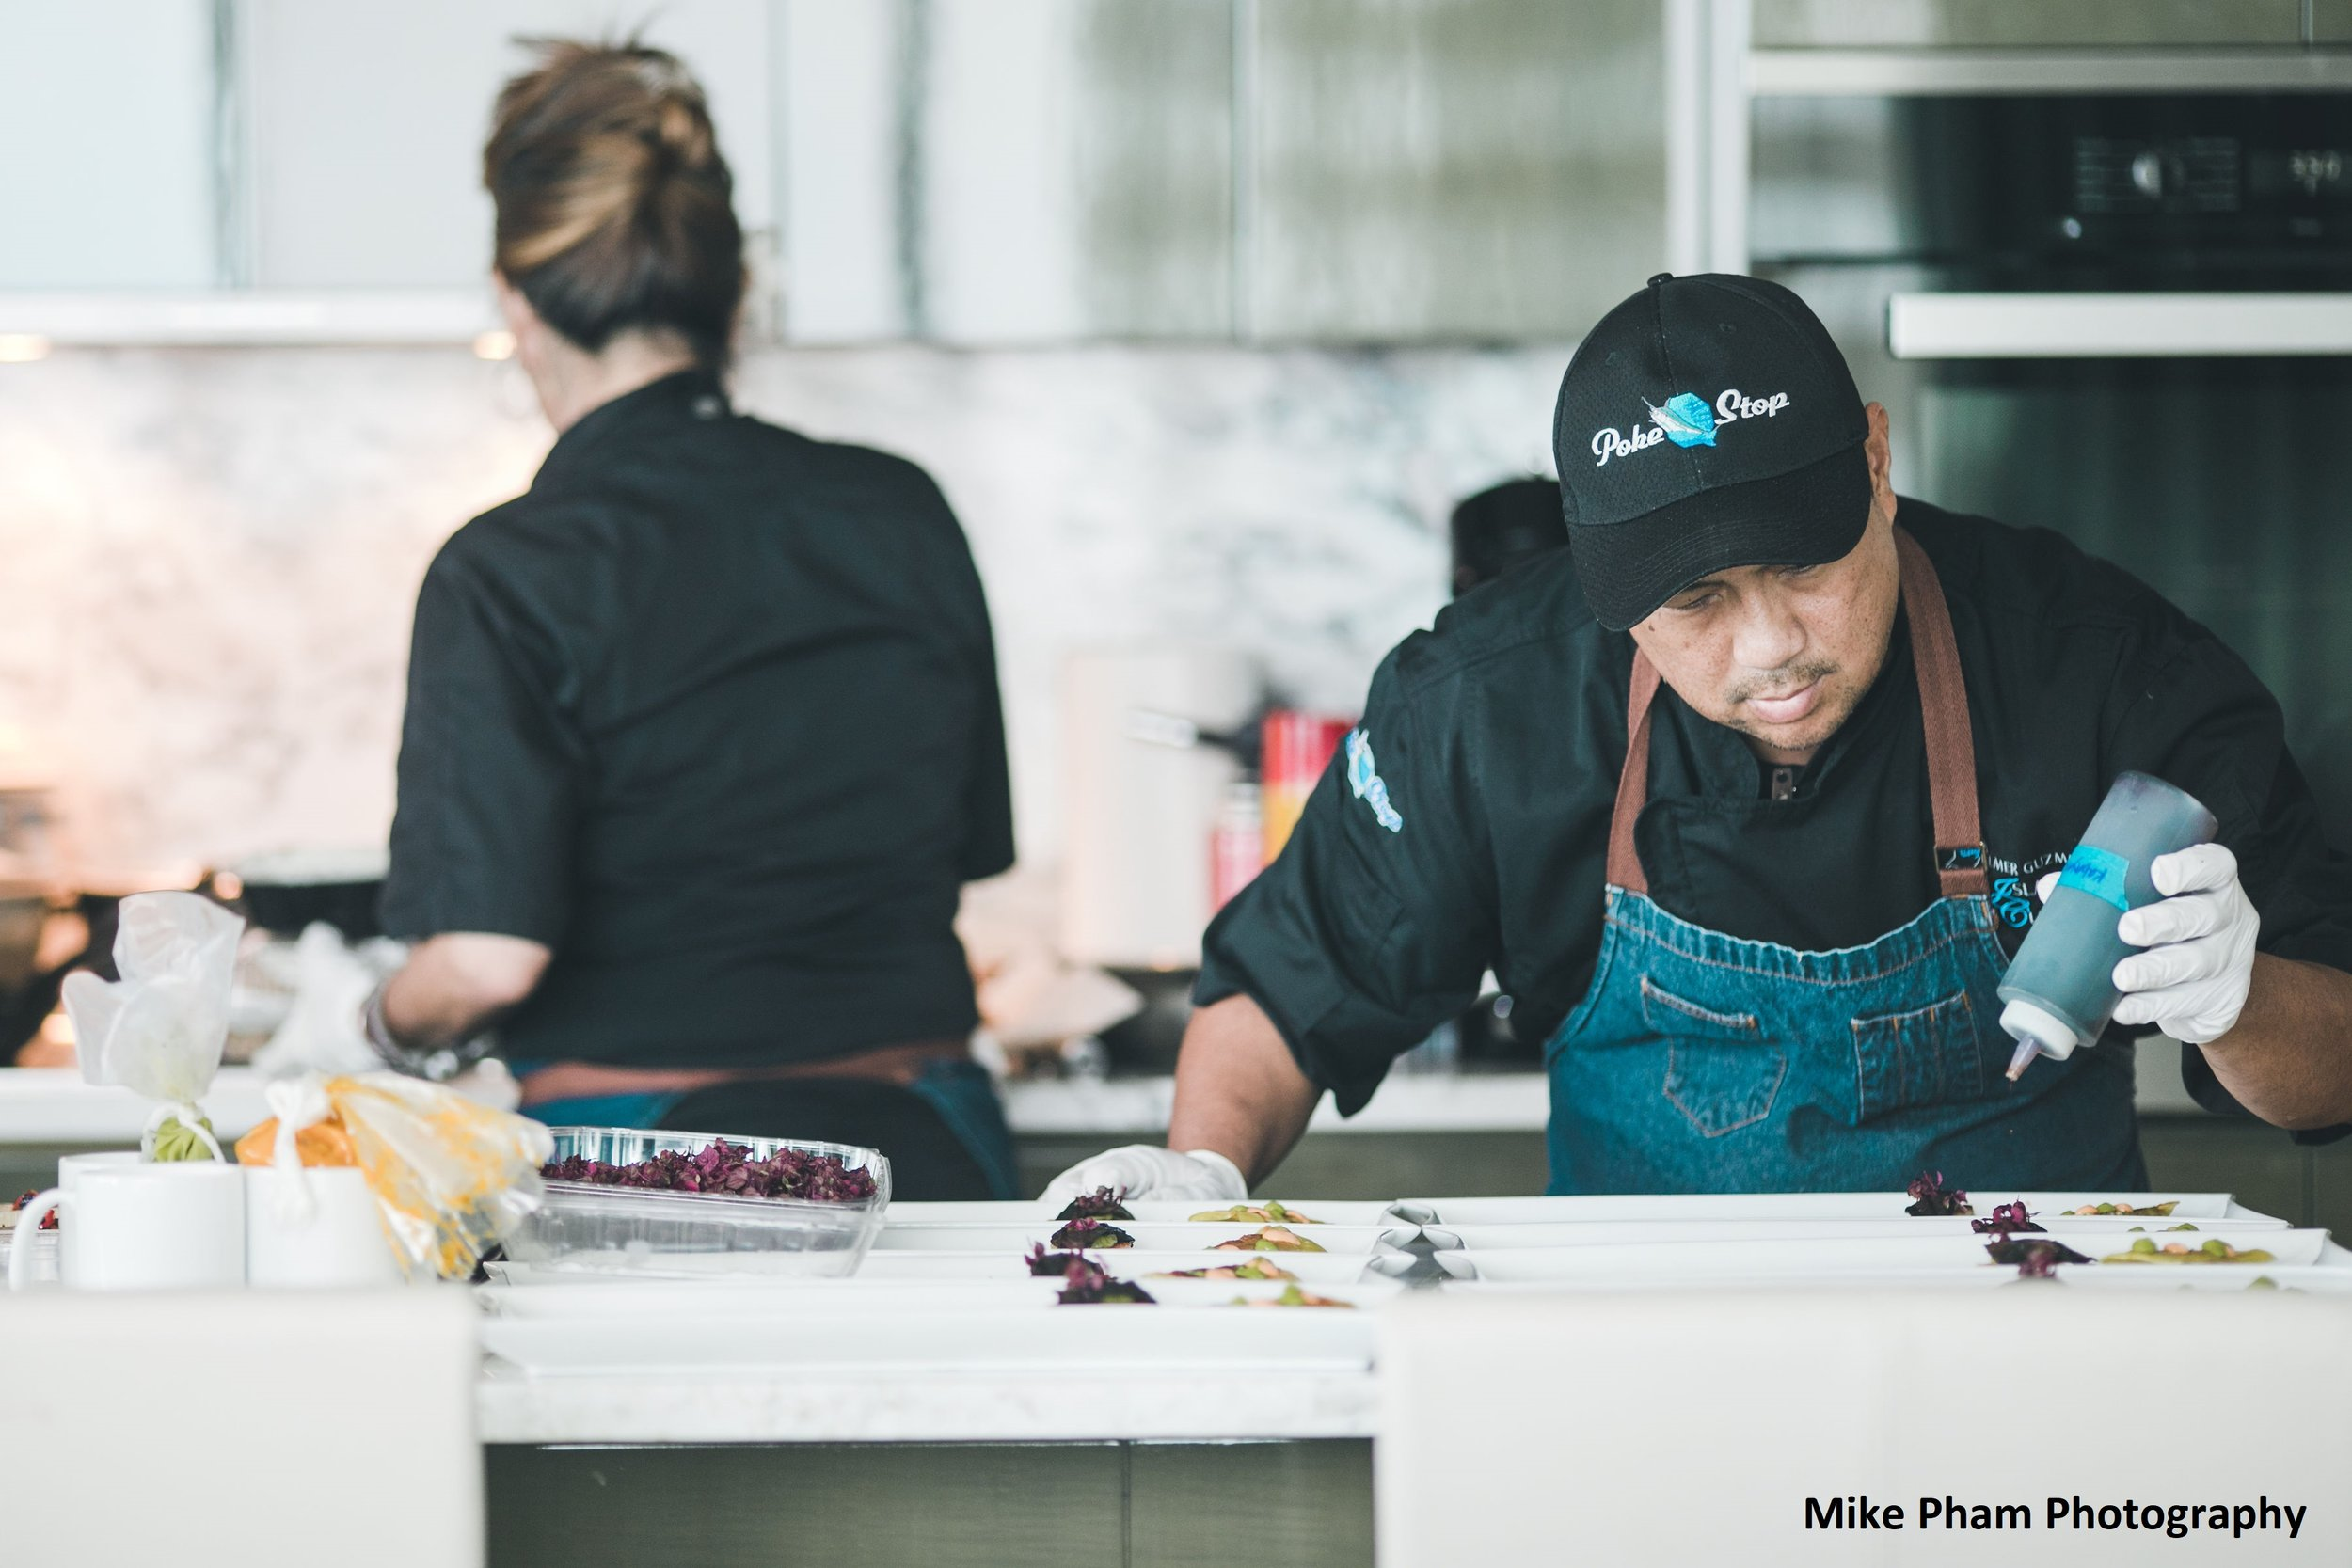 kelly_rc_tasting001 (Mike Pham Photography).jpg